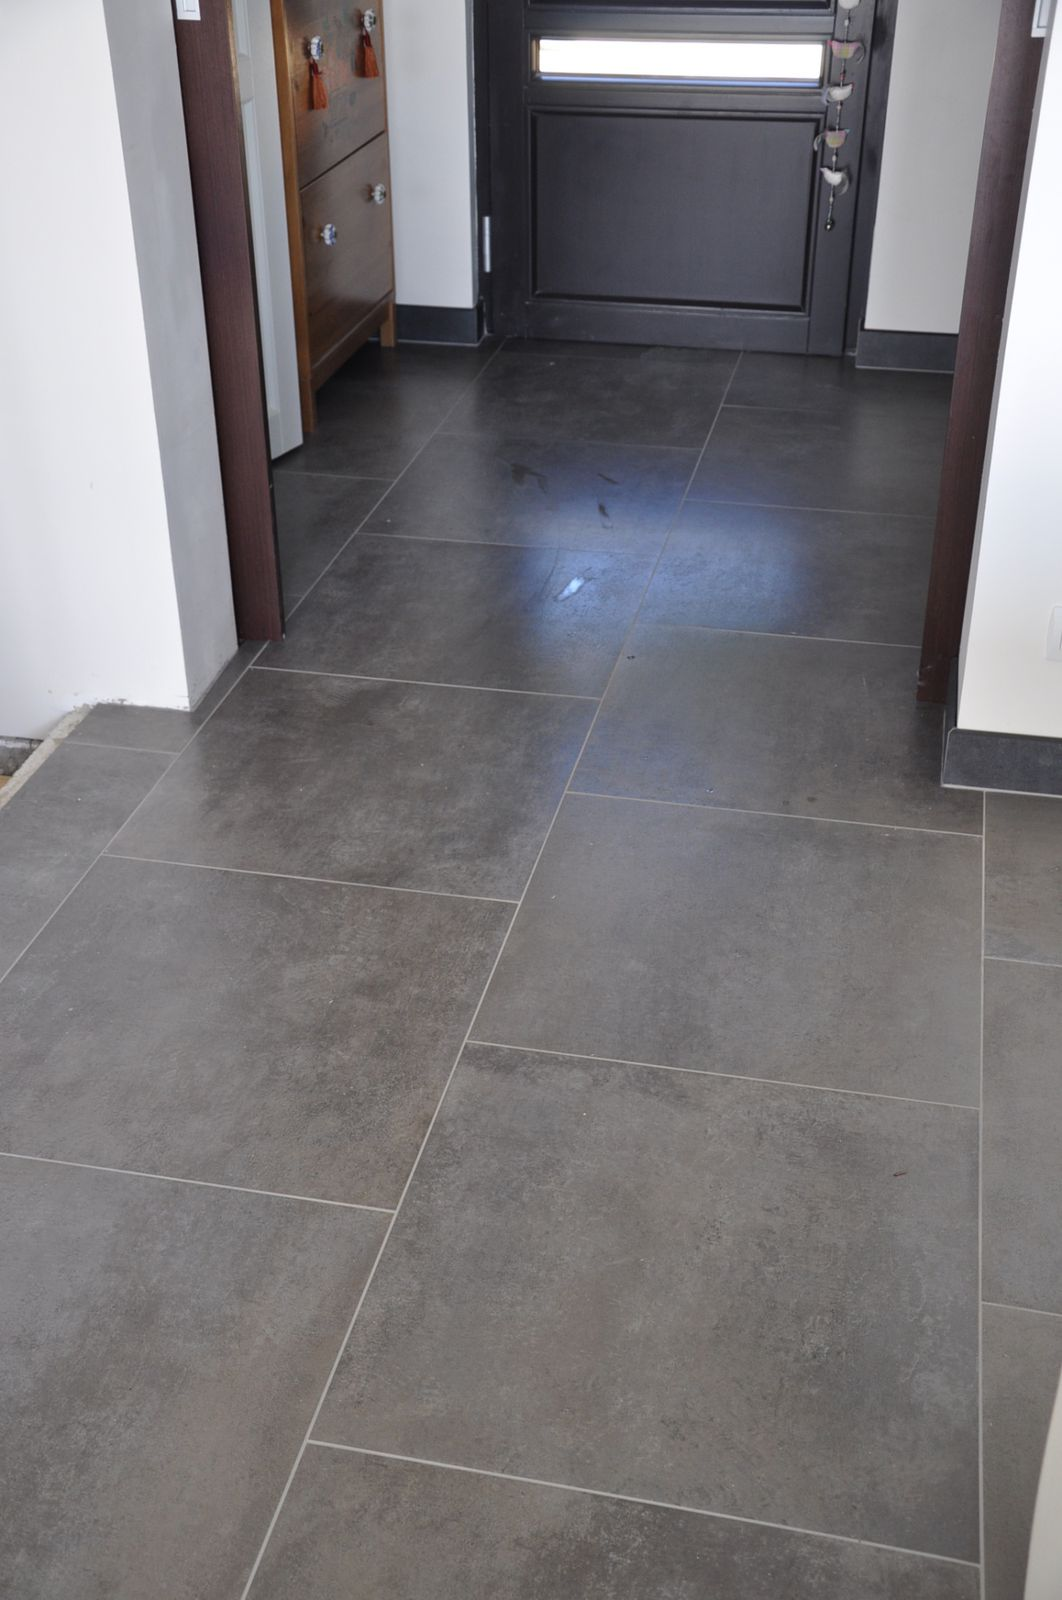 Carrelage de sol le blog de soso construction maison bois for Carrelage 60x60 pose droite ou diagonale